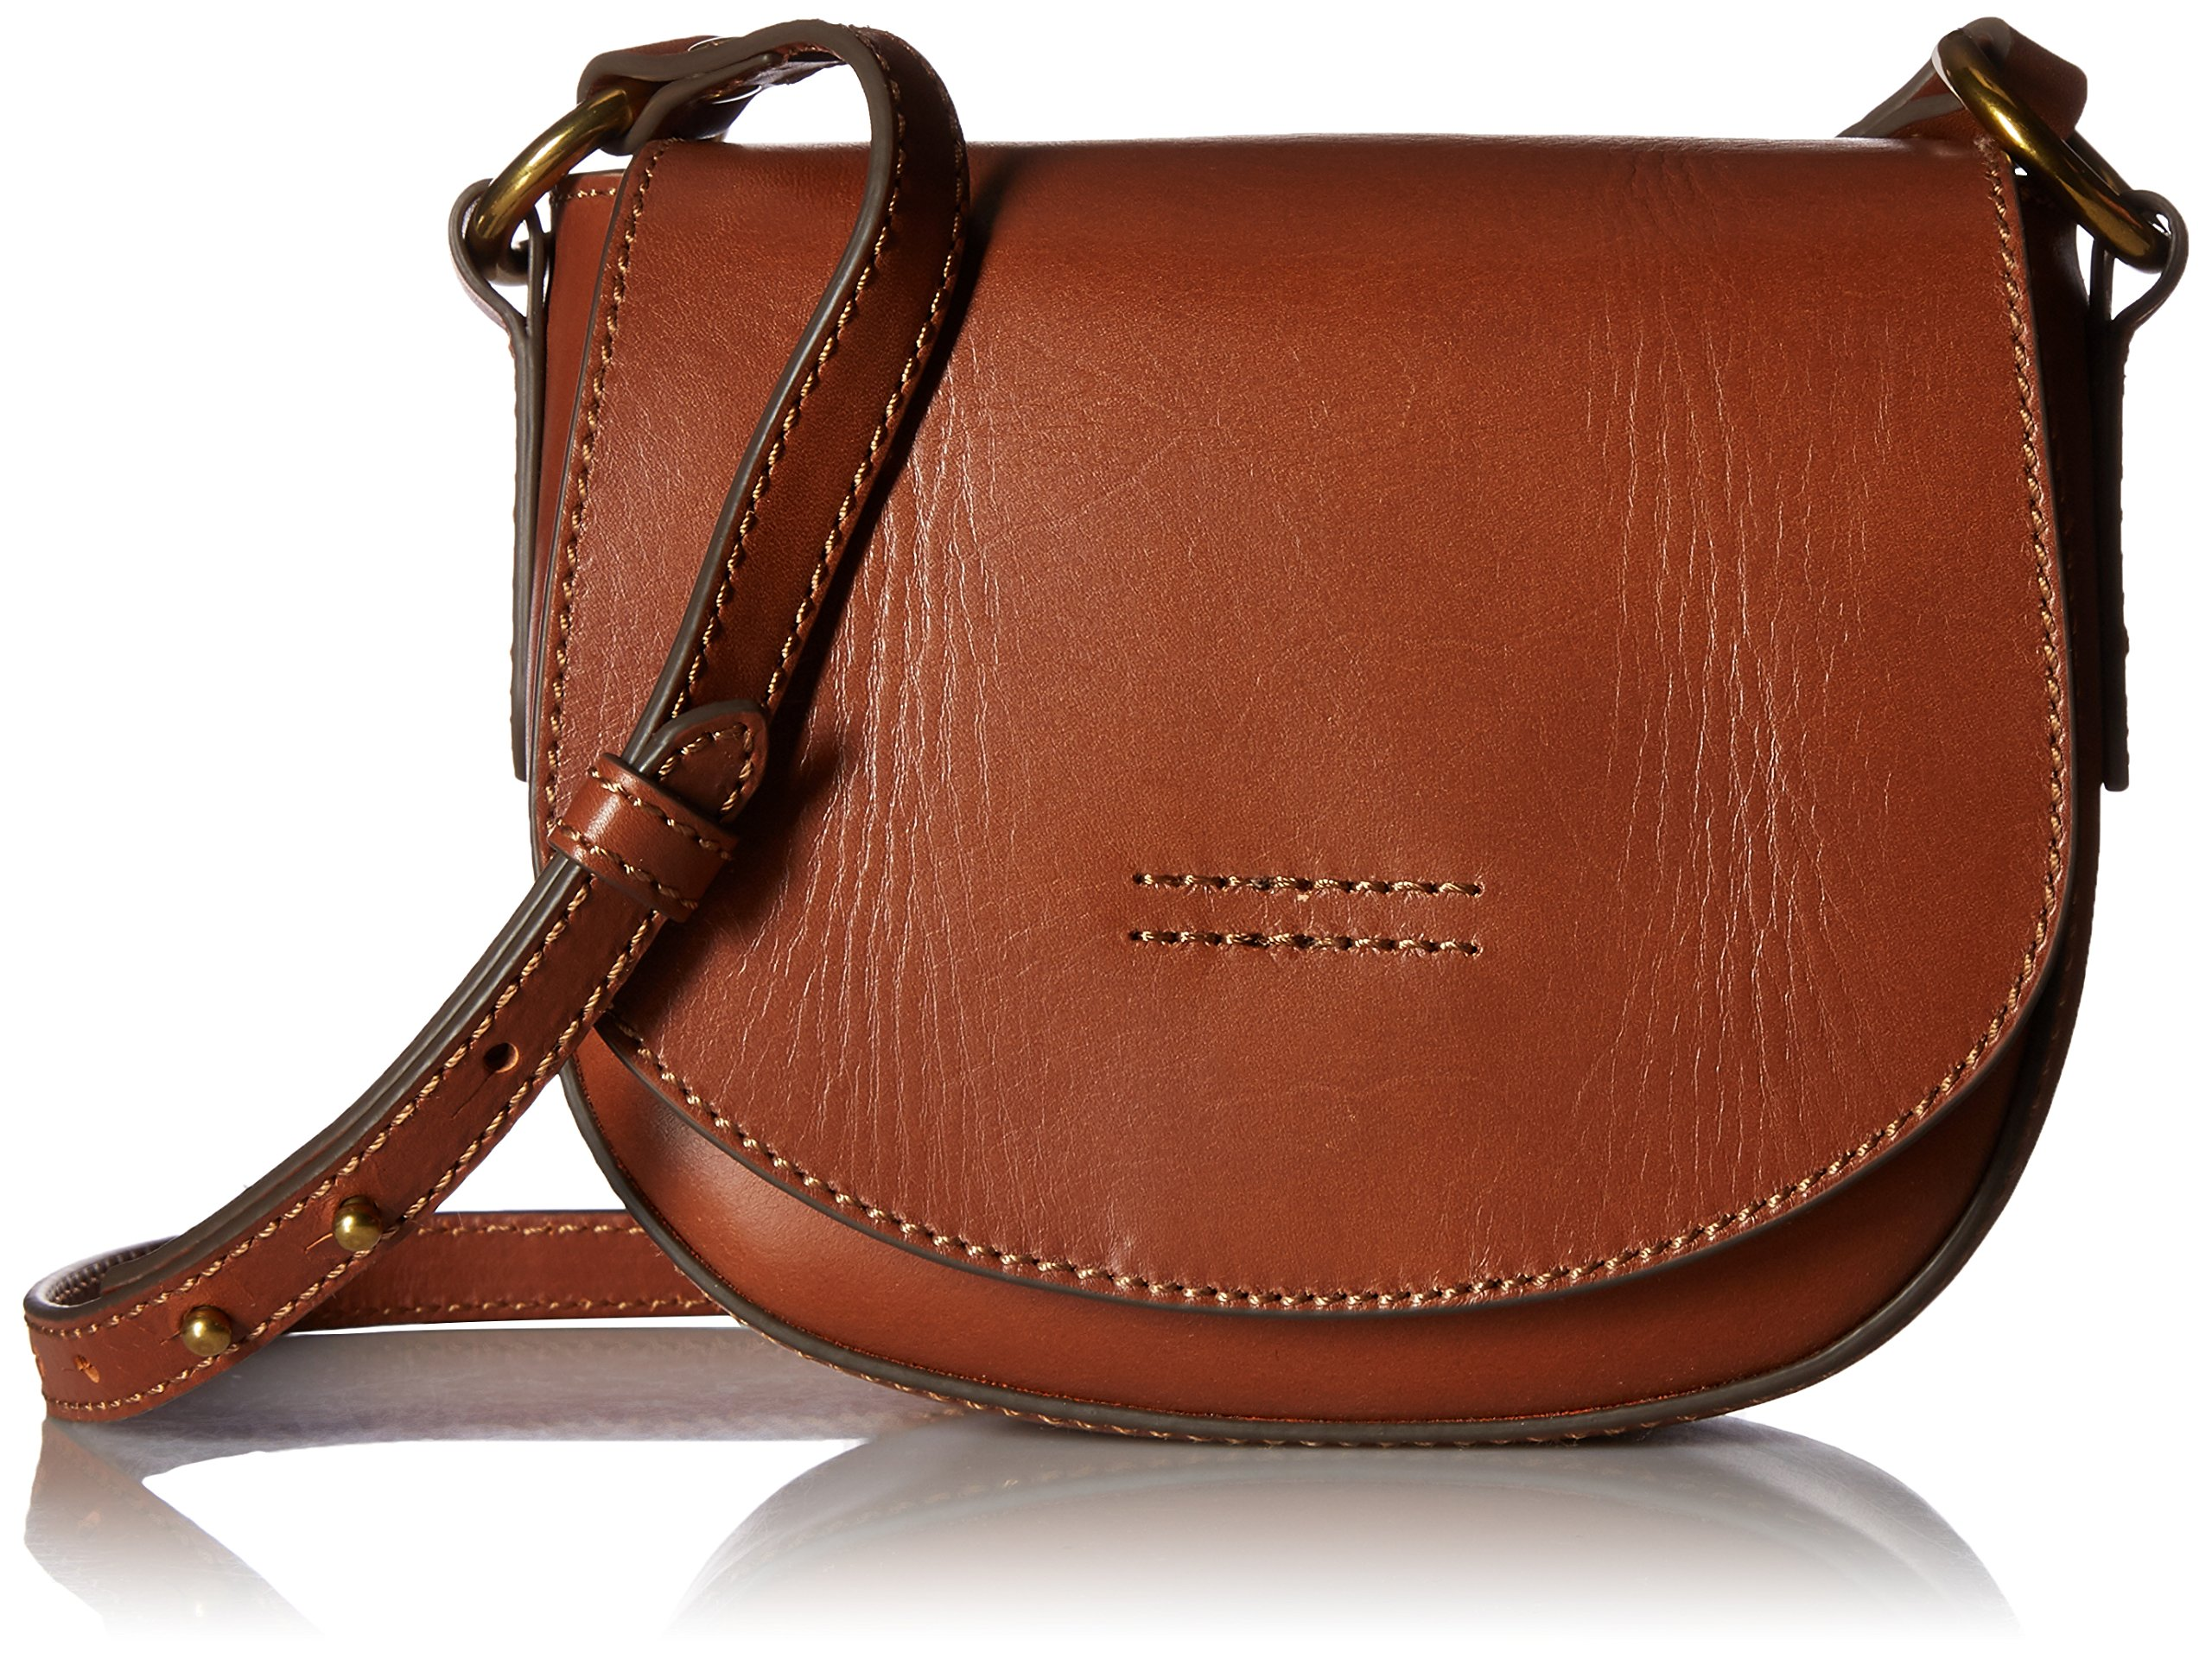 FRYE Harness Small Saddle, Rust by FRYE